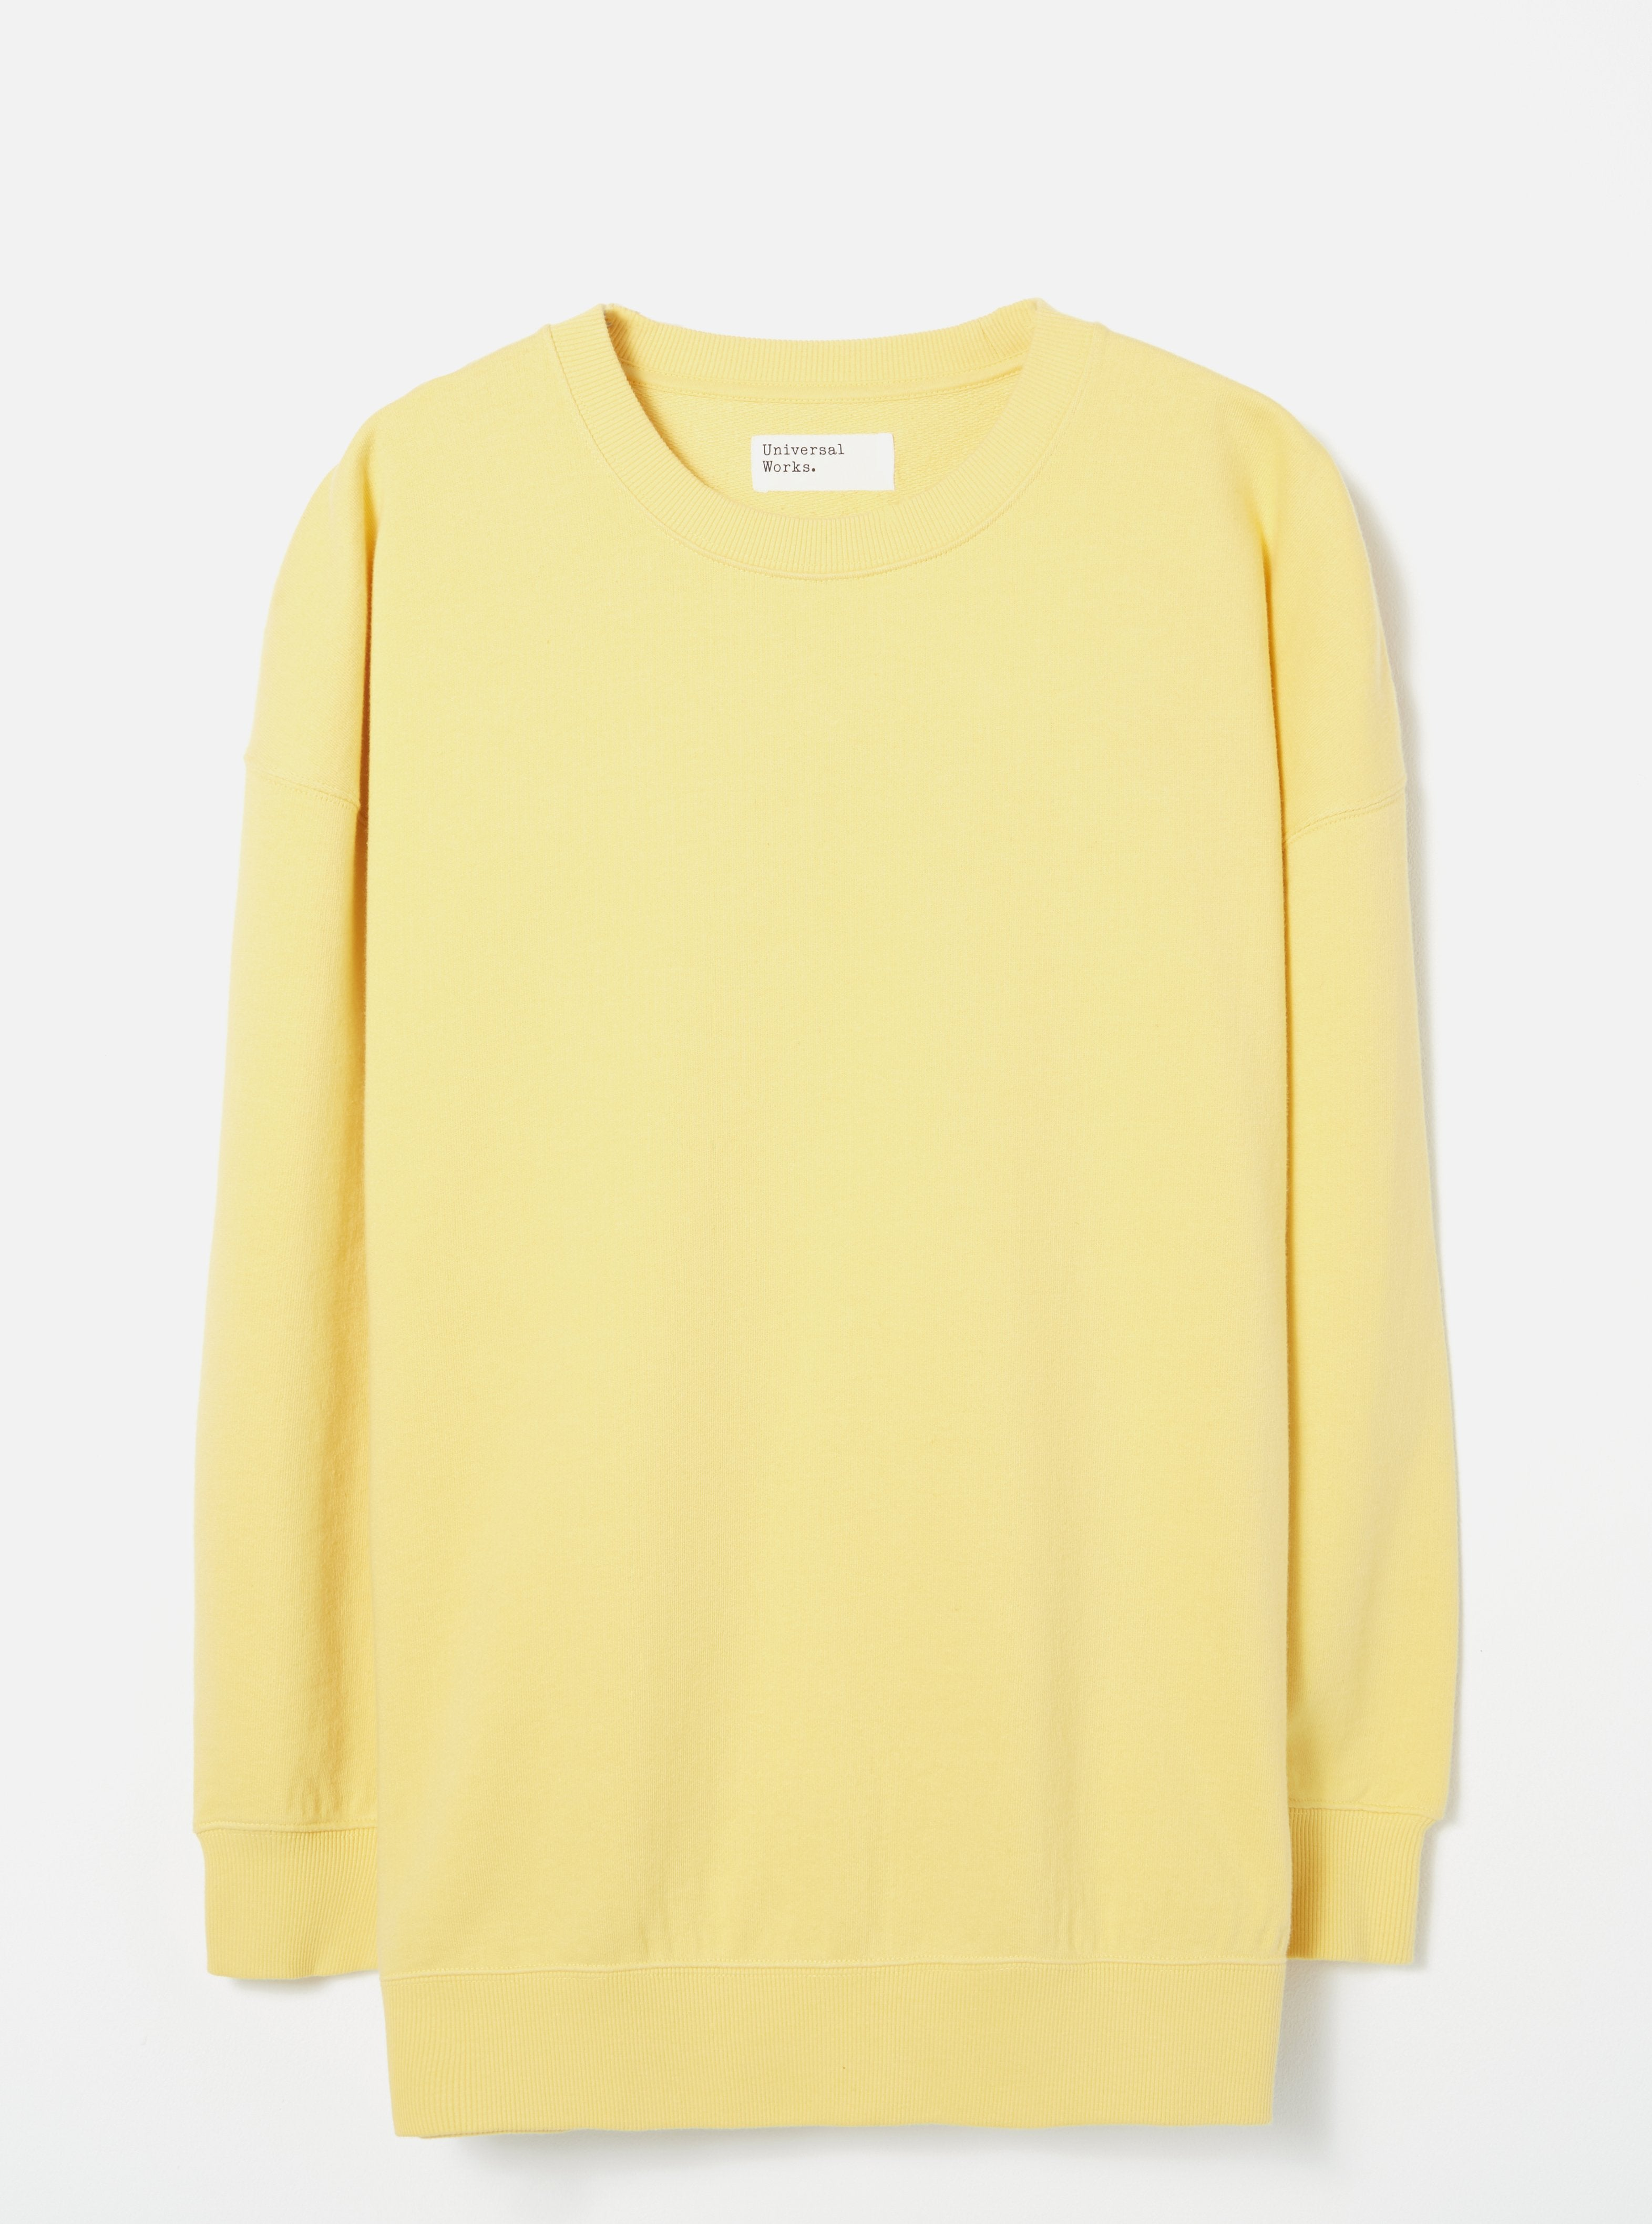 Universal Works Oversized Sweatshirt (Sunshine)